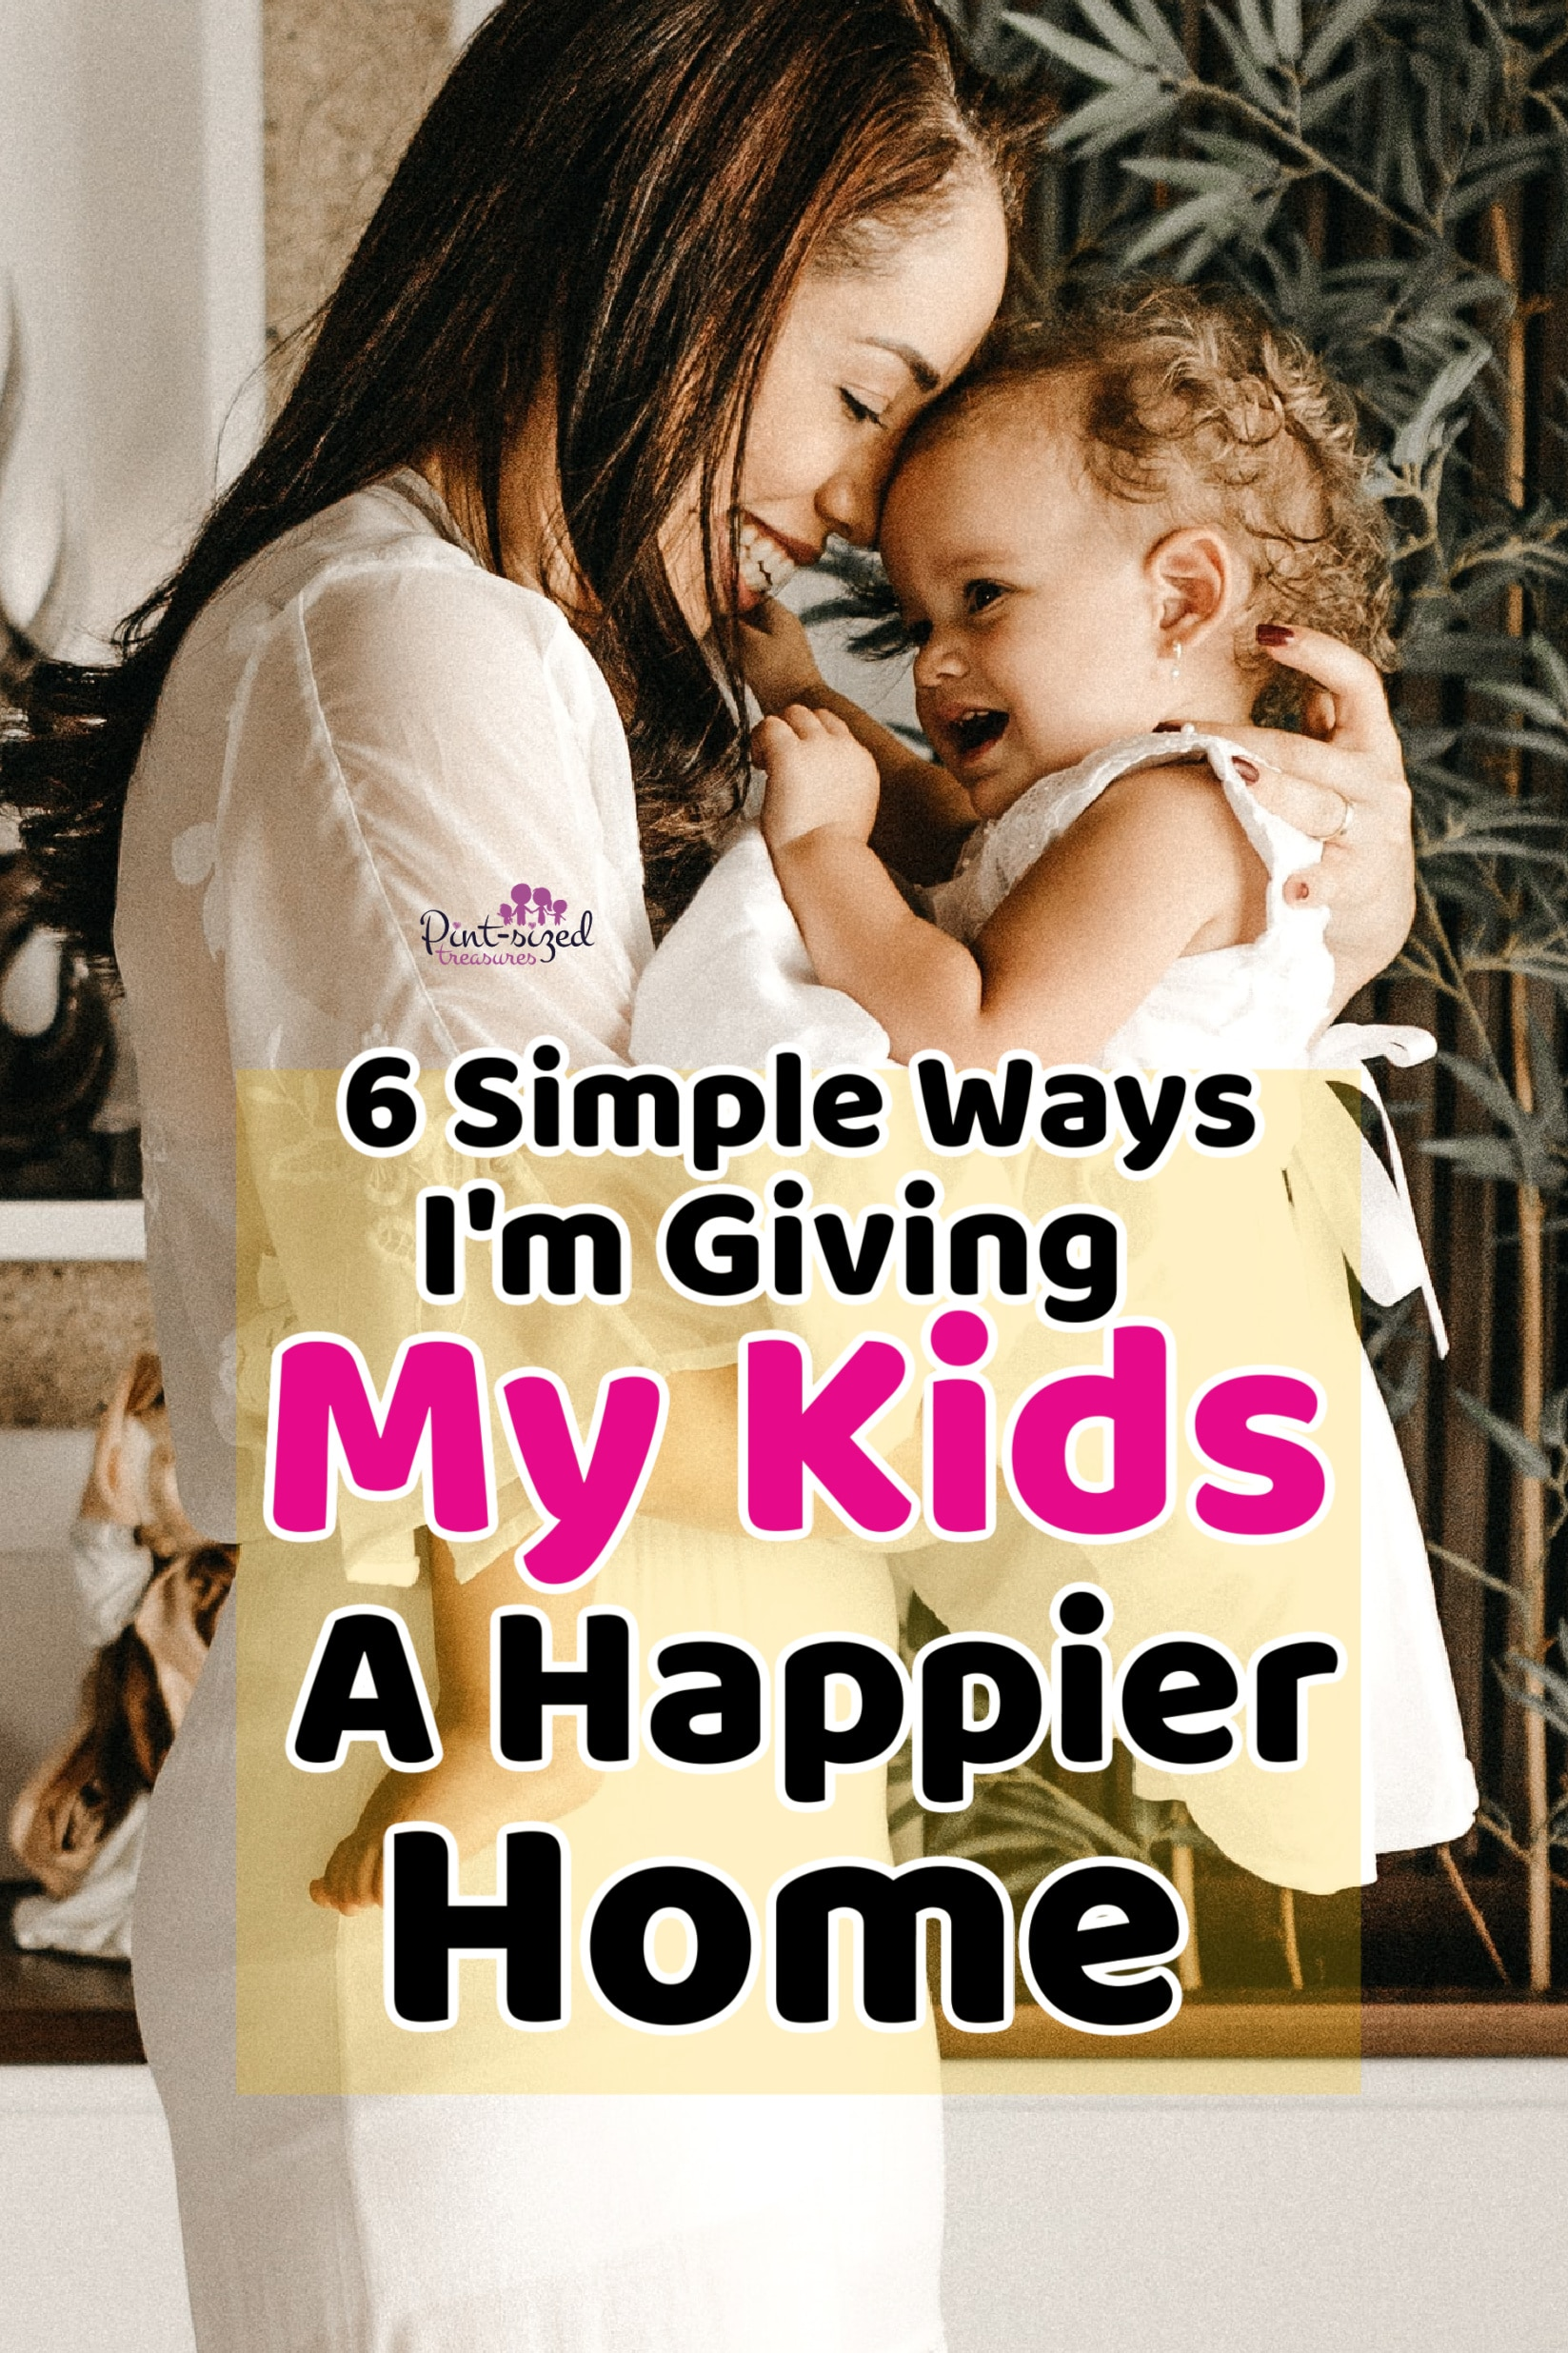 mother holding daughter in order to give her a happier home